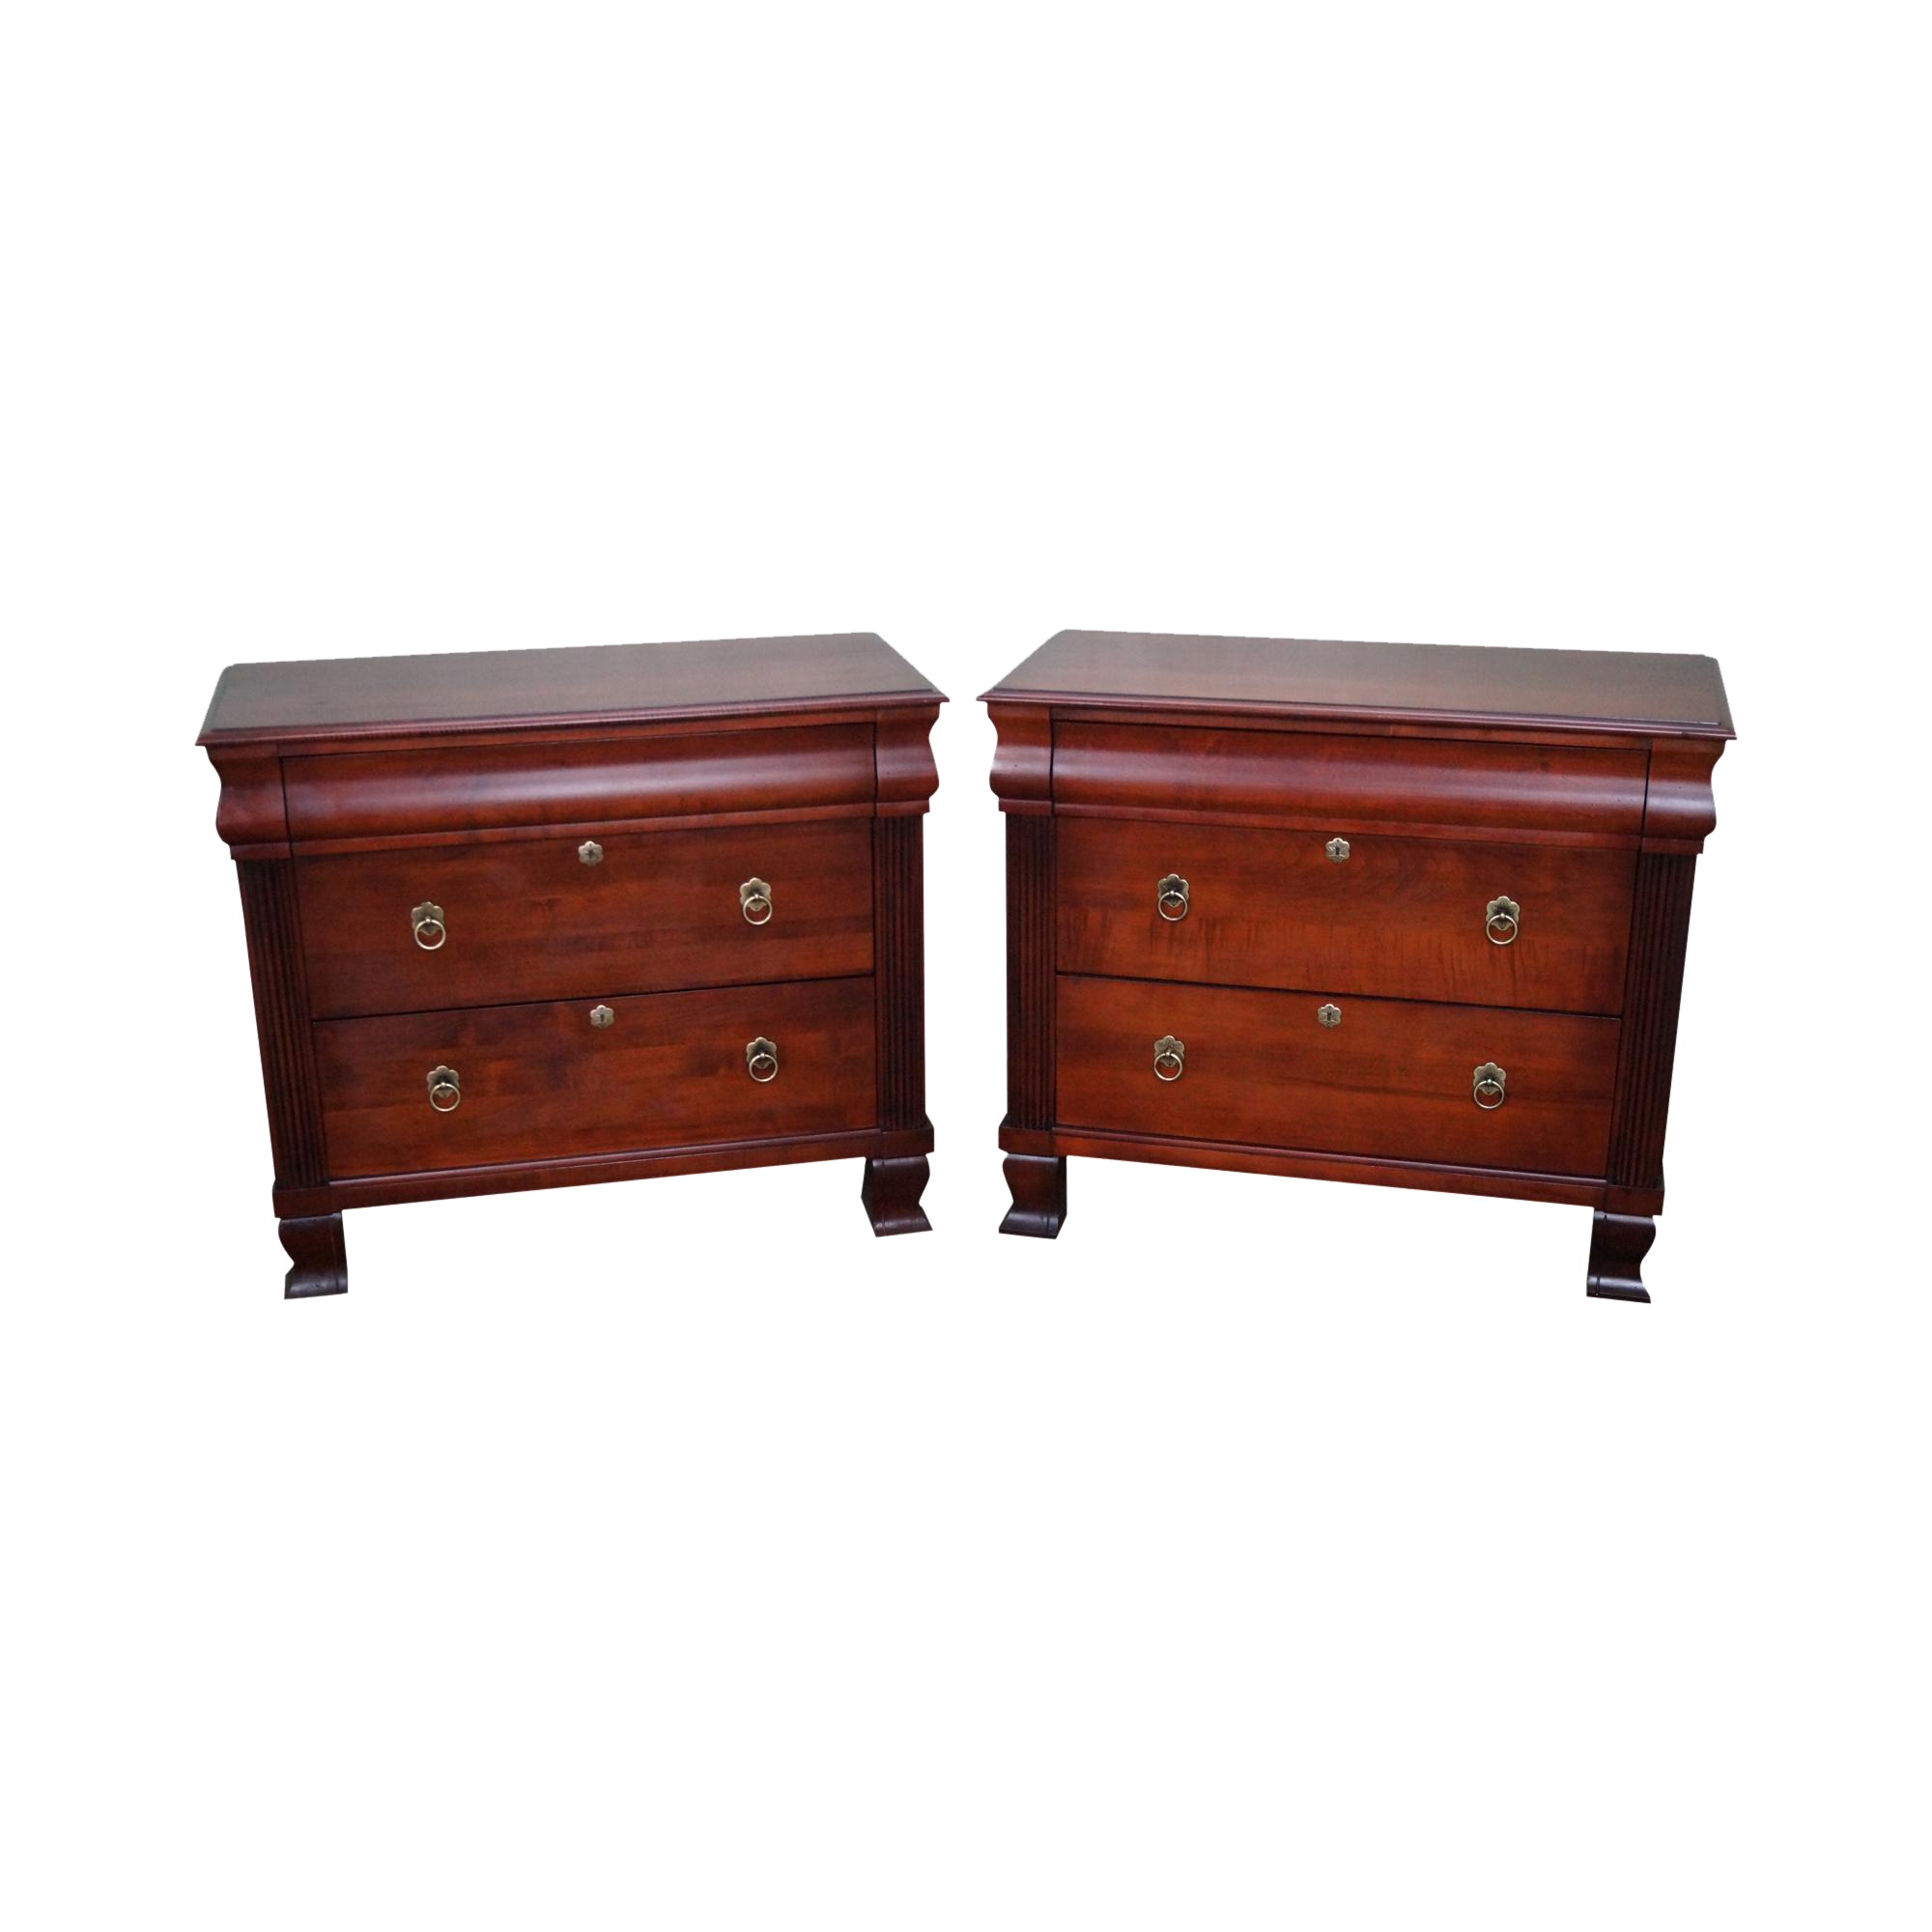 Master Bedroom Ethan Allen British Classics Pair Of Hand Crafted Solid Maple 3 Draw Ethan Allen Furniture Furniture Bedside Table Bedside Tables Nightstands